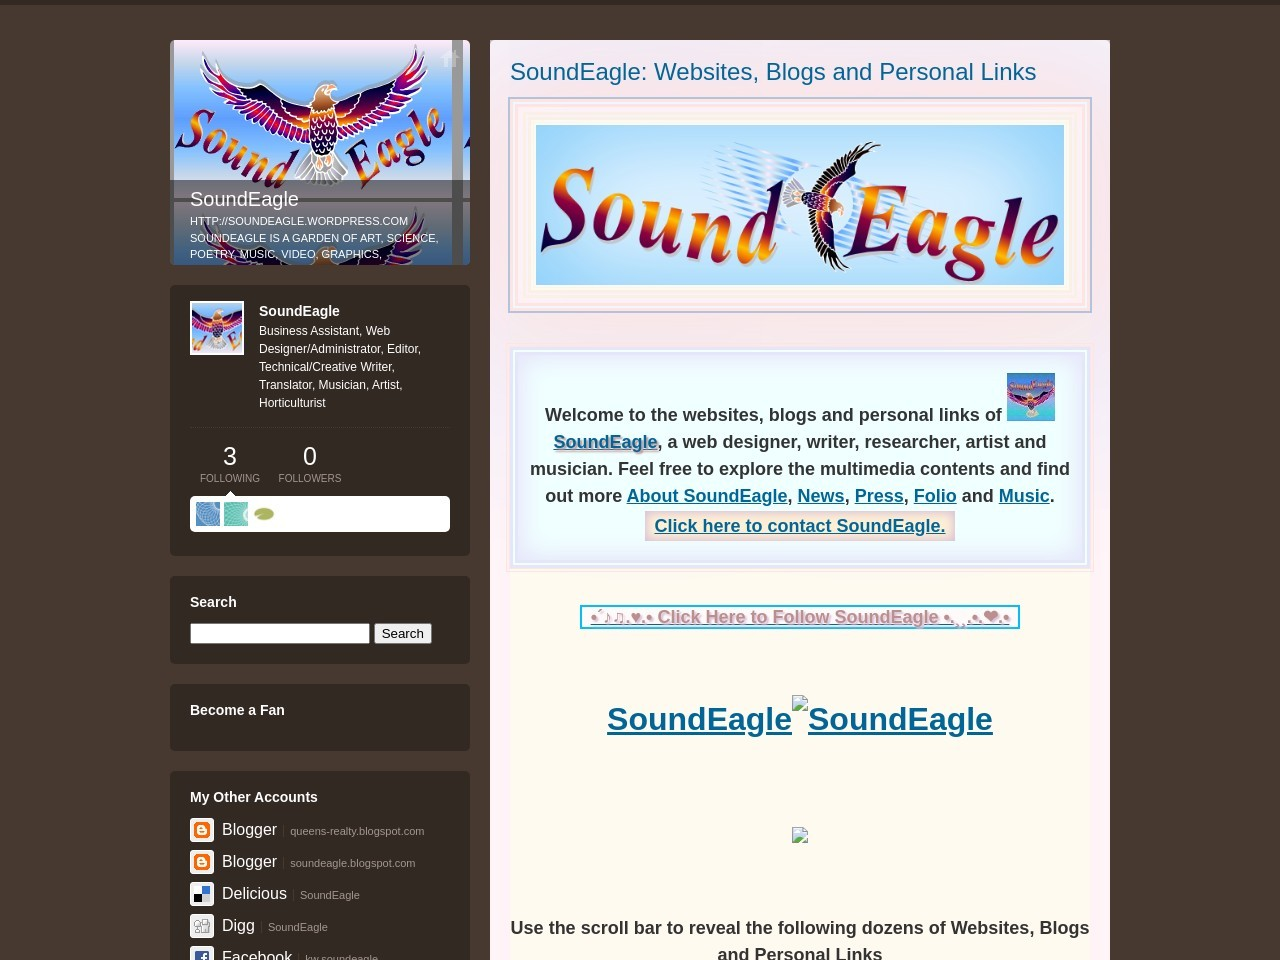 SoundEagle on TypePad